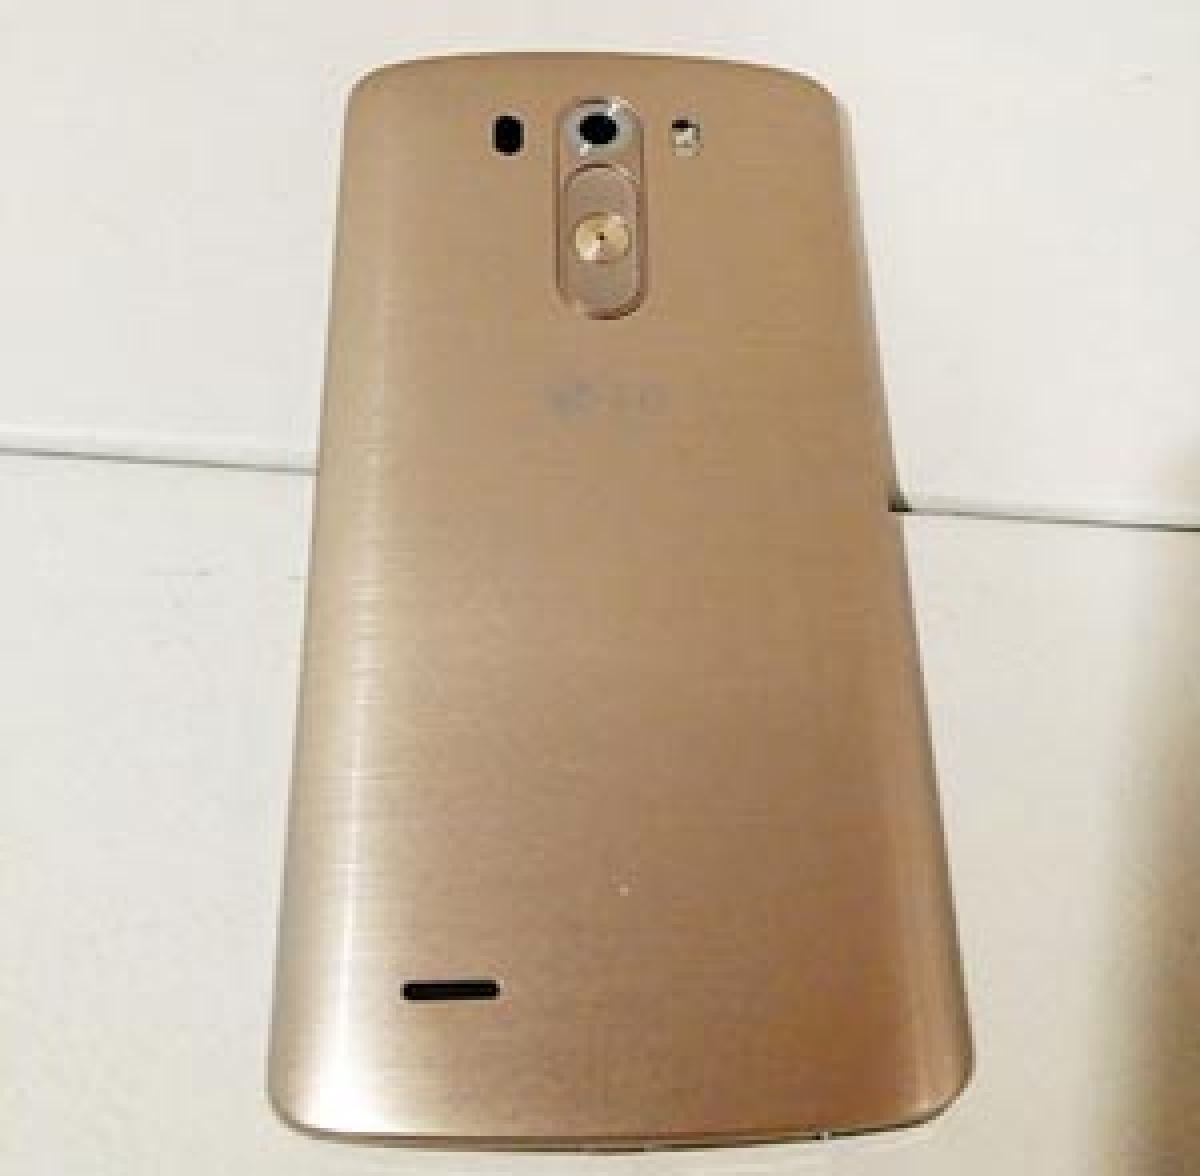 LG G3's pictures leaked ahead of May 27 launch